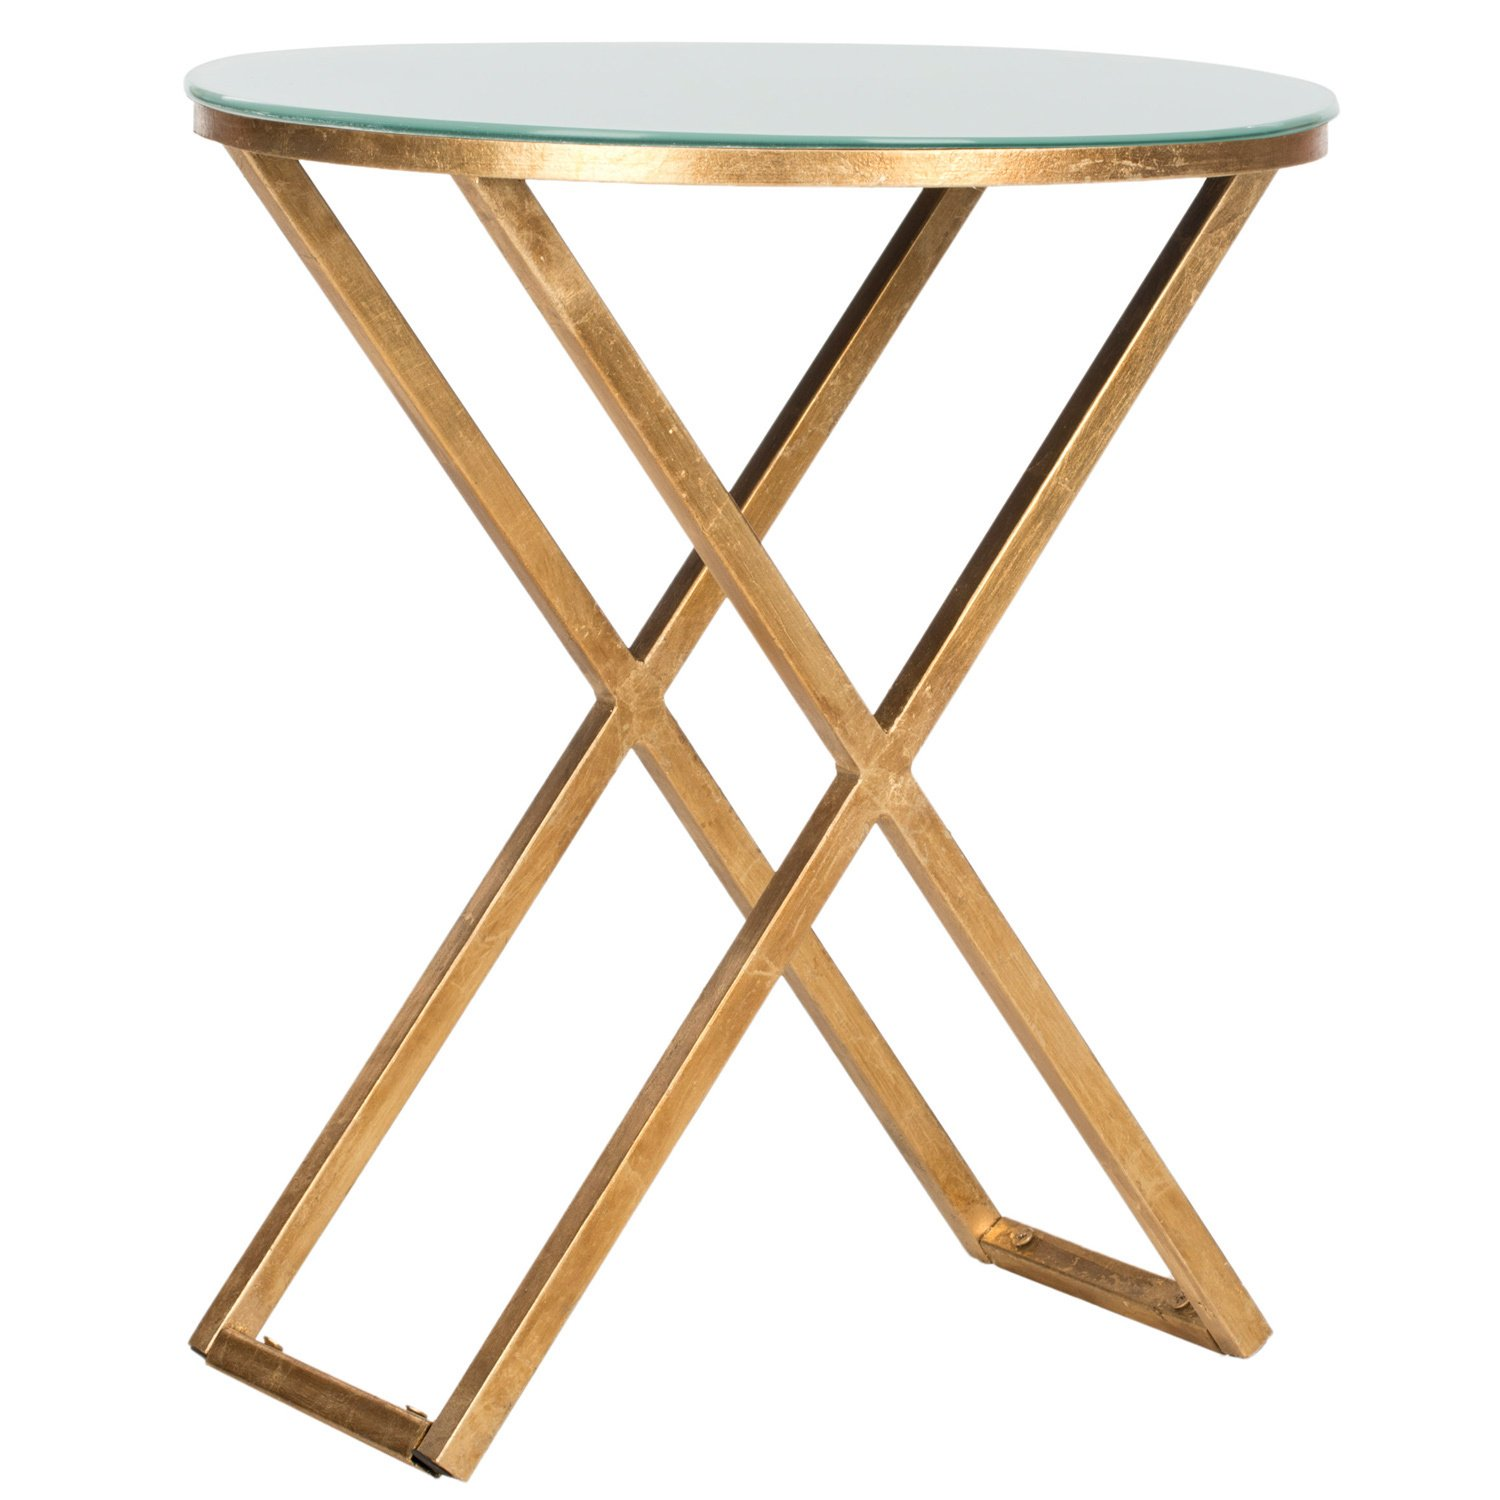 safavieh treasures riona gold white top accent table free shipping today cement base wide nightstand tall occasional center cover beach chairs bunnings drum throne threshold